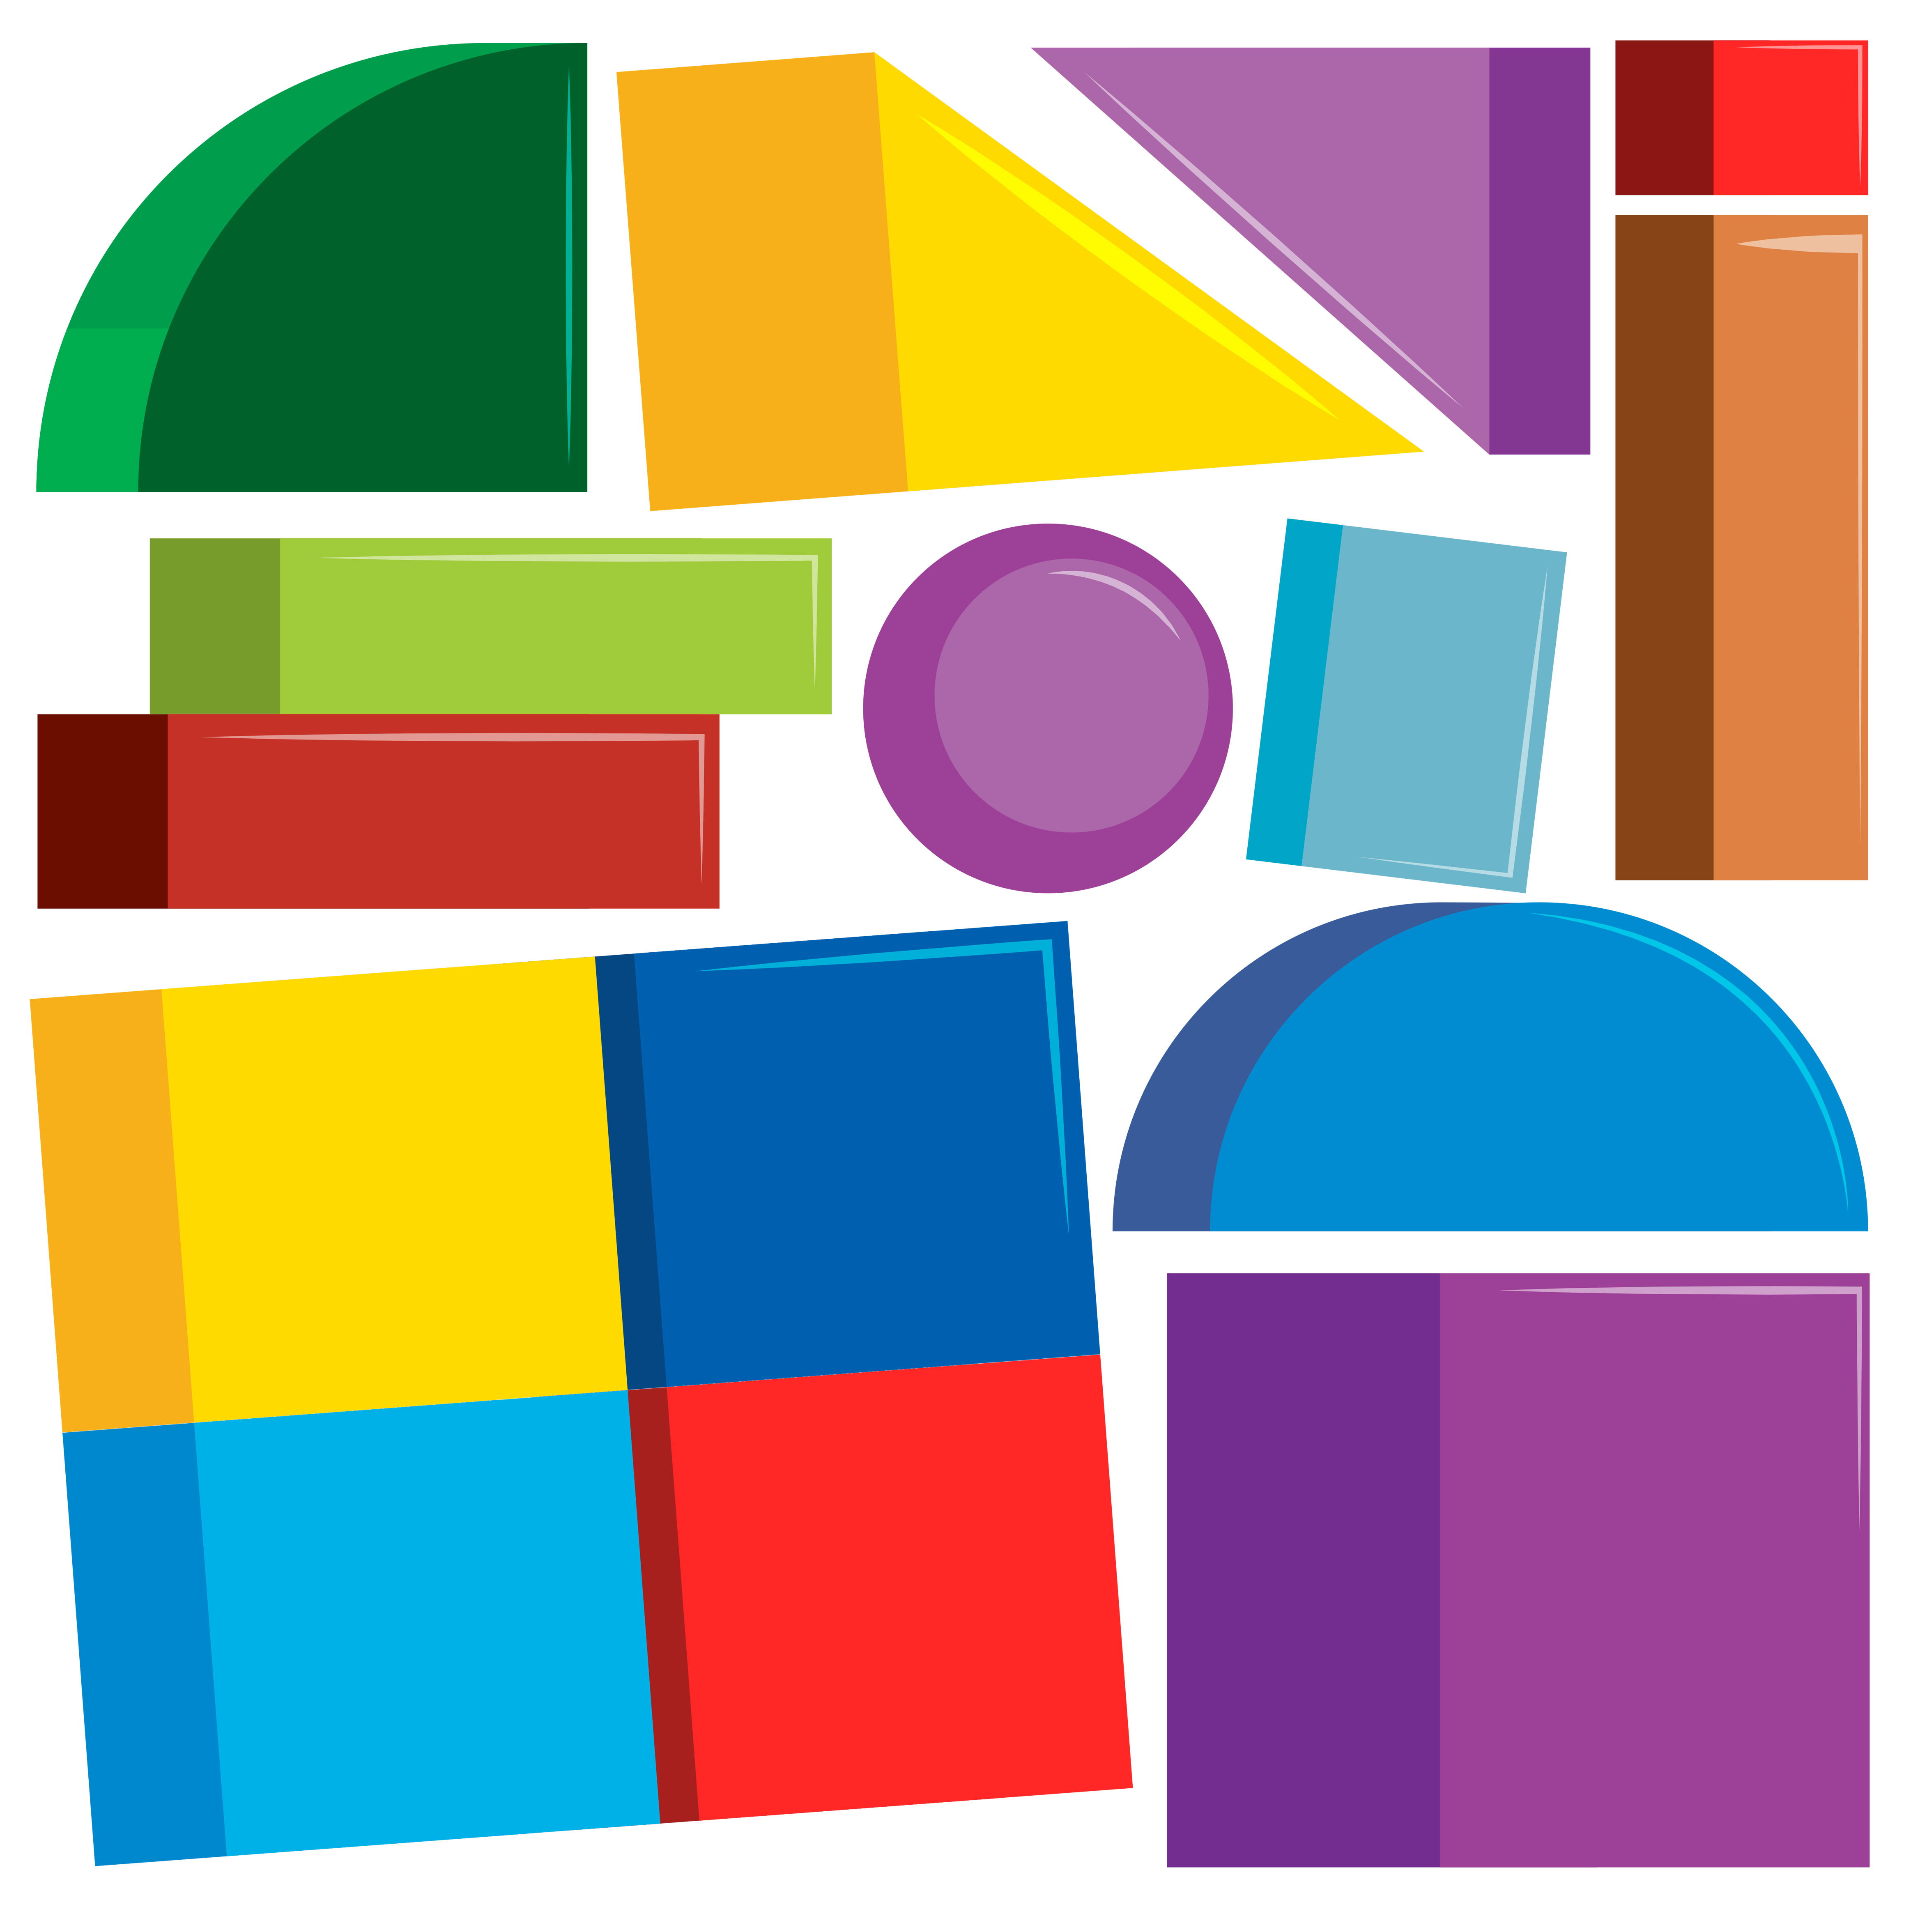 Set of colorful shapes 475026 - Download Free Vectors